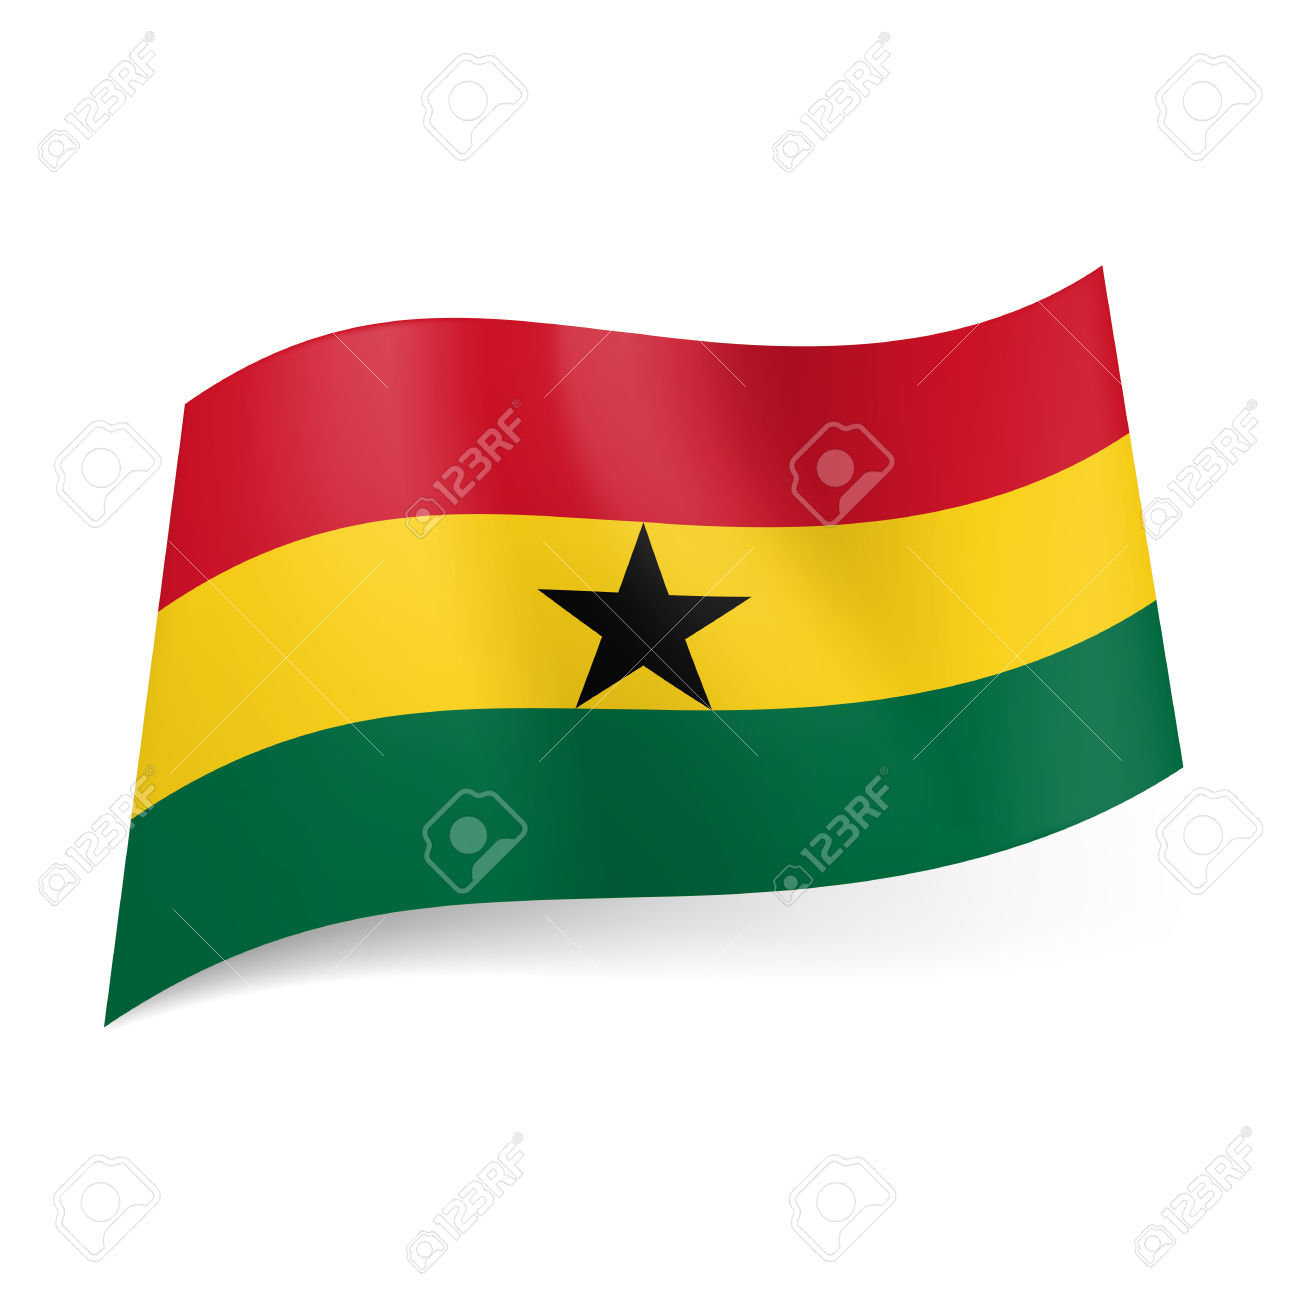 National Flag Of Ghana Red, Yellow And Green Horizontal Stripes.